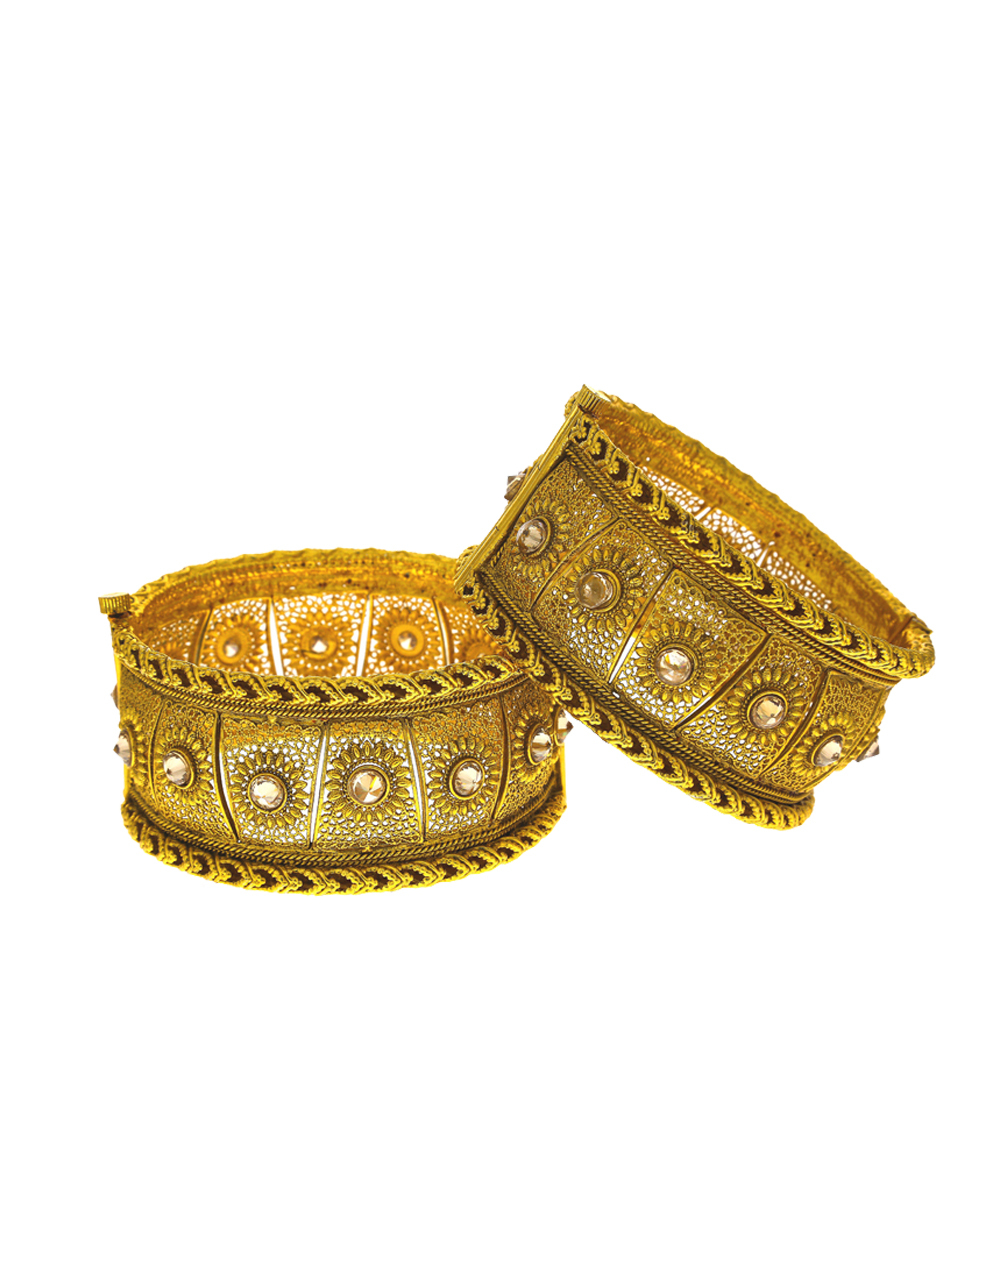 Floral designer bangles decked with delicate LCT stone in centre of design bangles for women